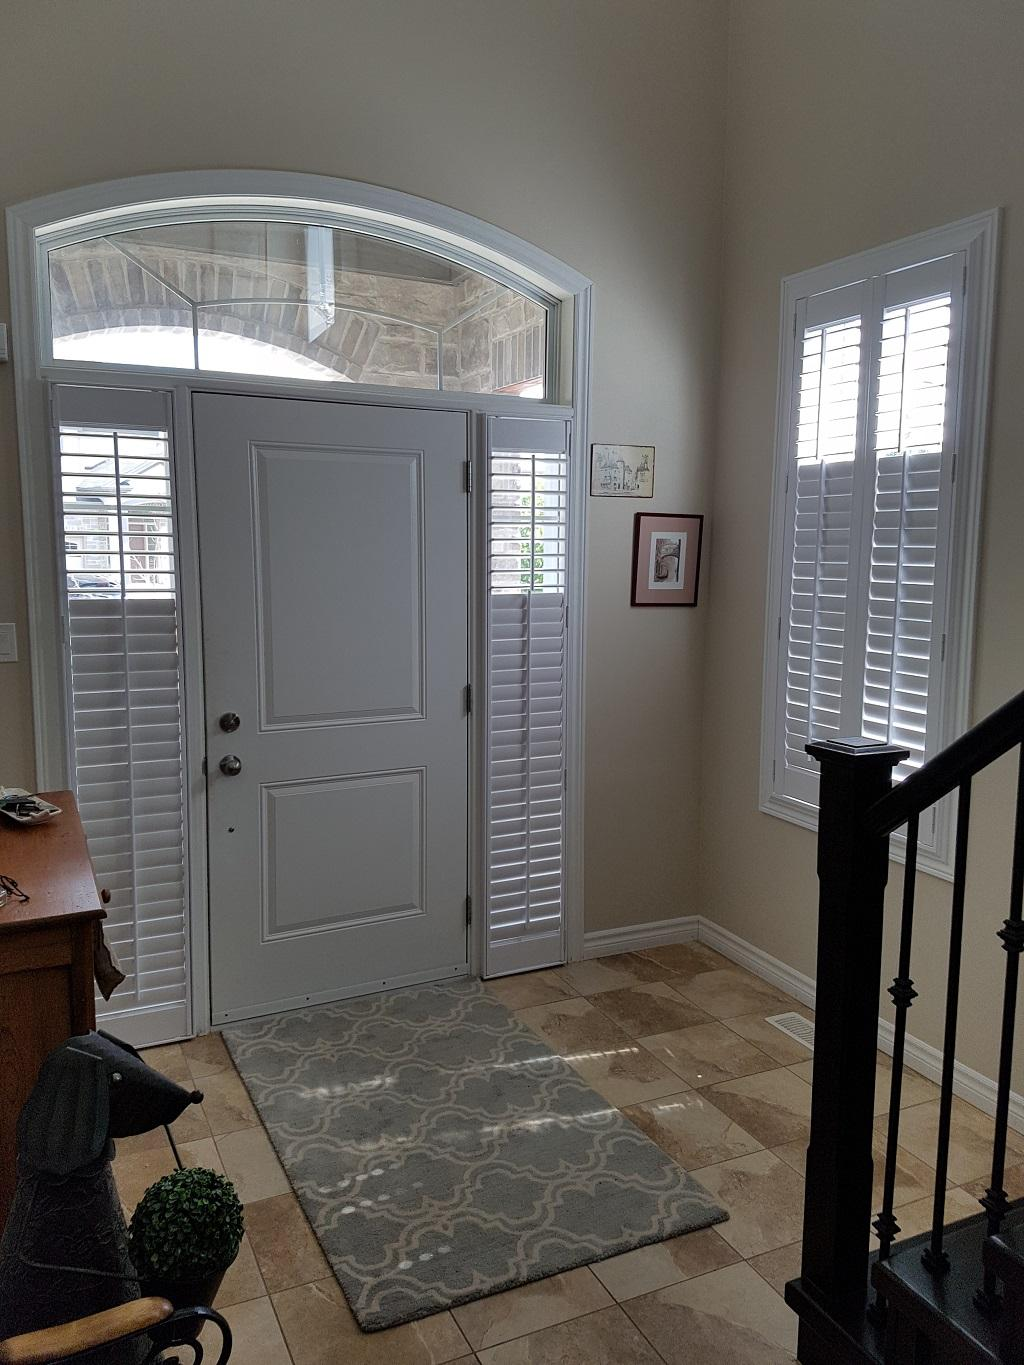 Budget Blinds à Waterloo: Adding shutters to your sidelights for light control is  a great solution. You can expect vinyl shutters to stand up well over time in a high-traffic area such as this.